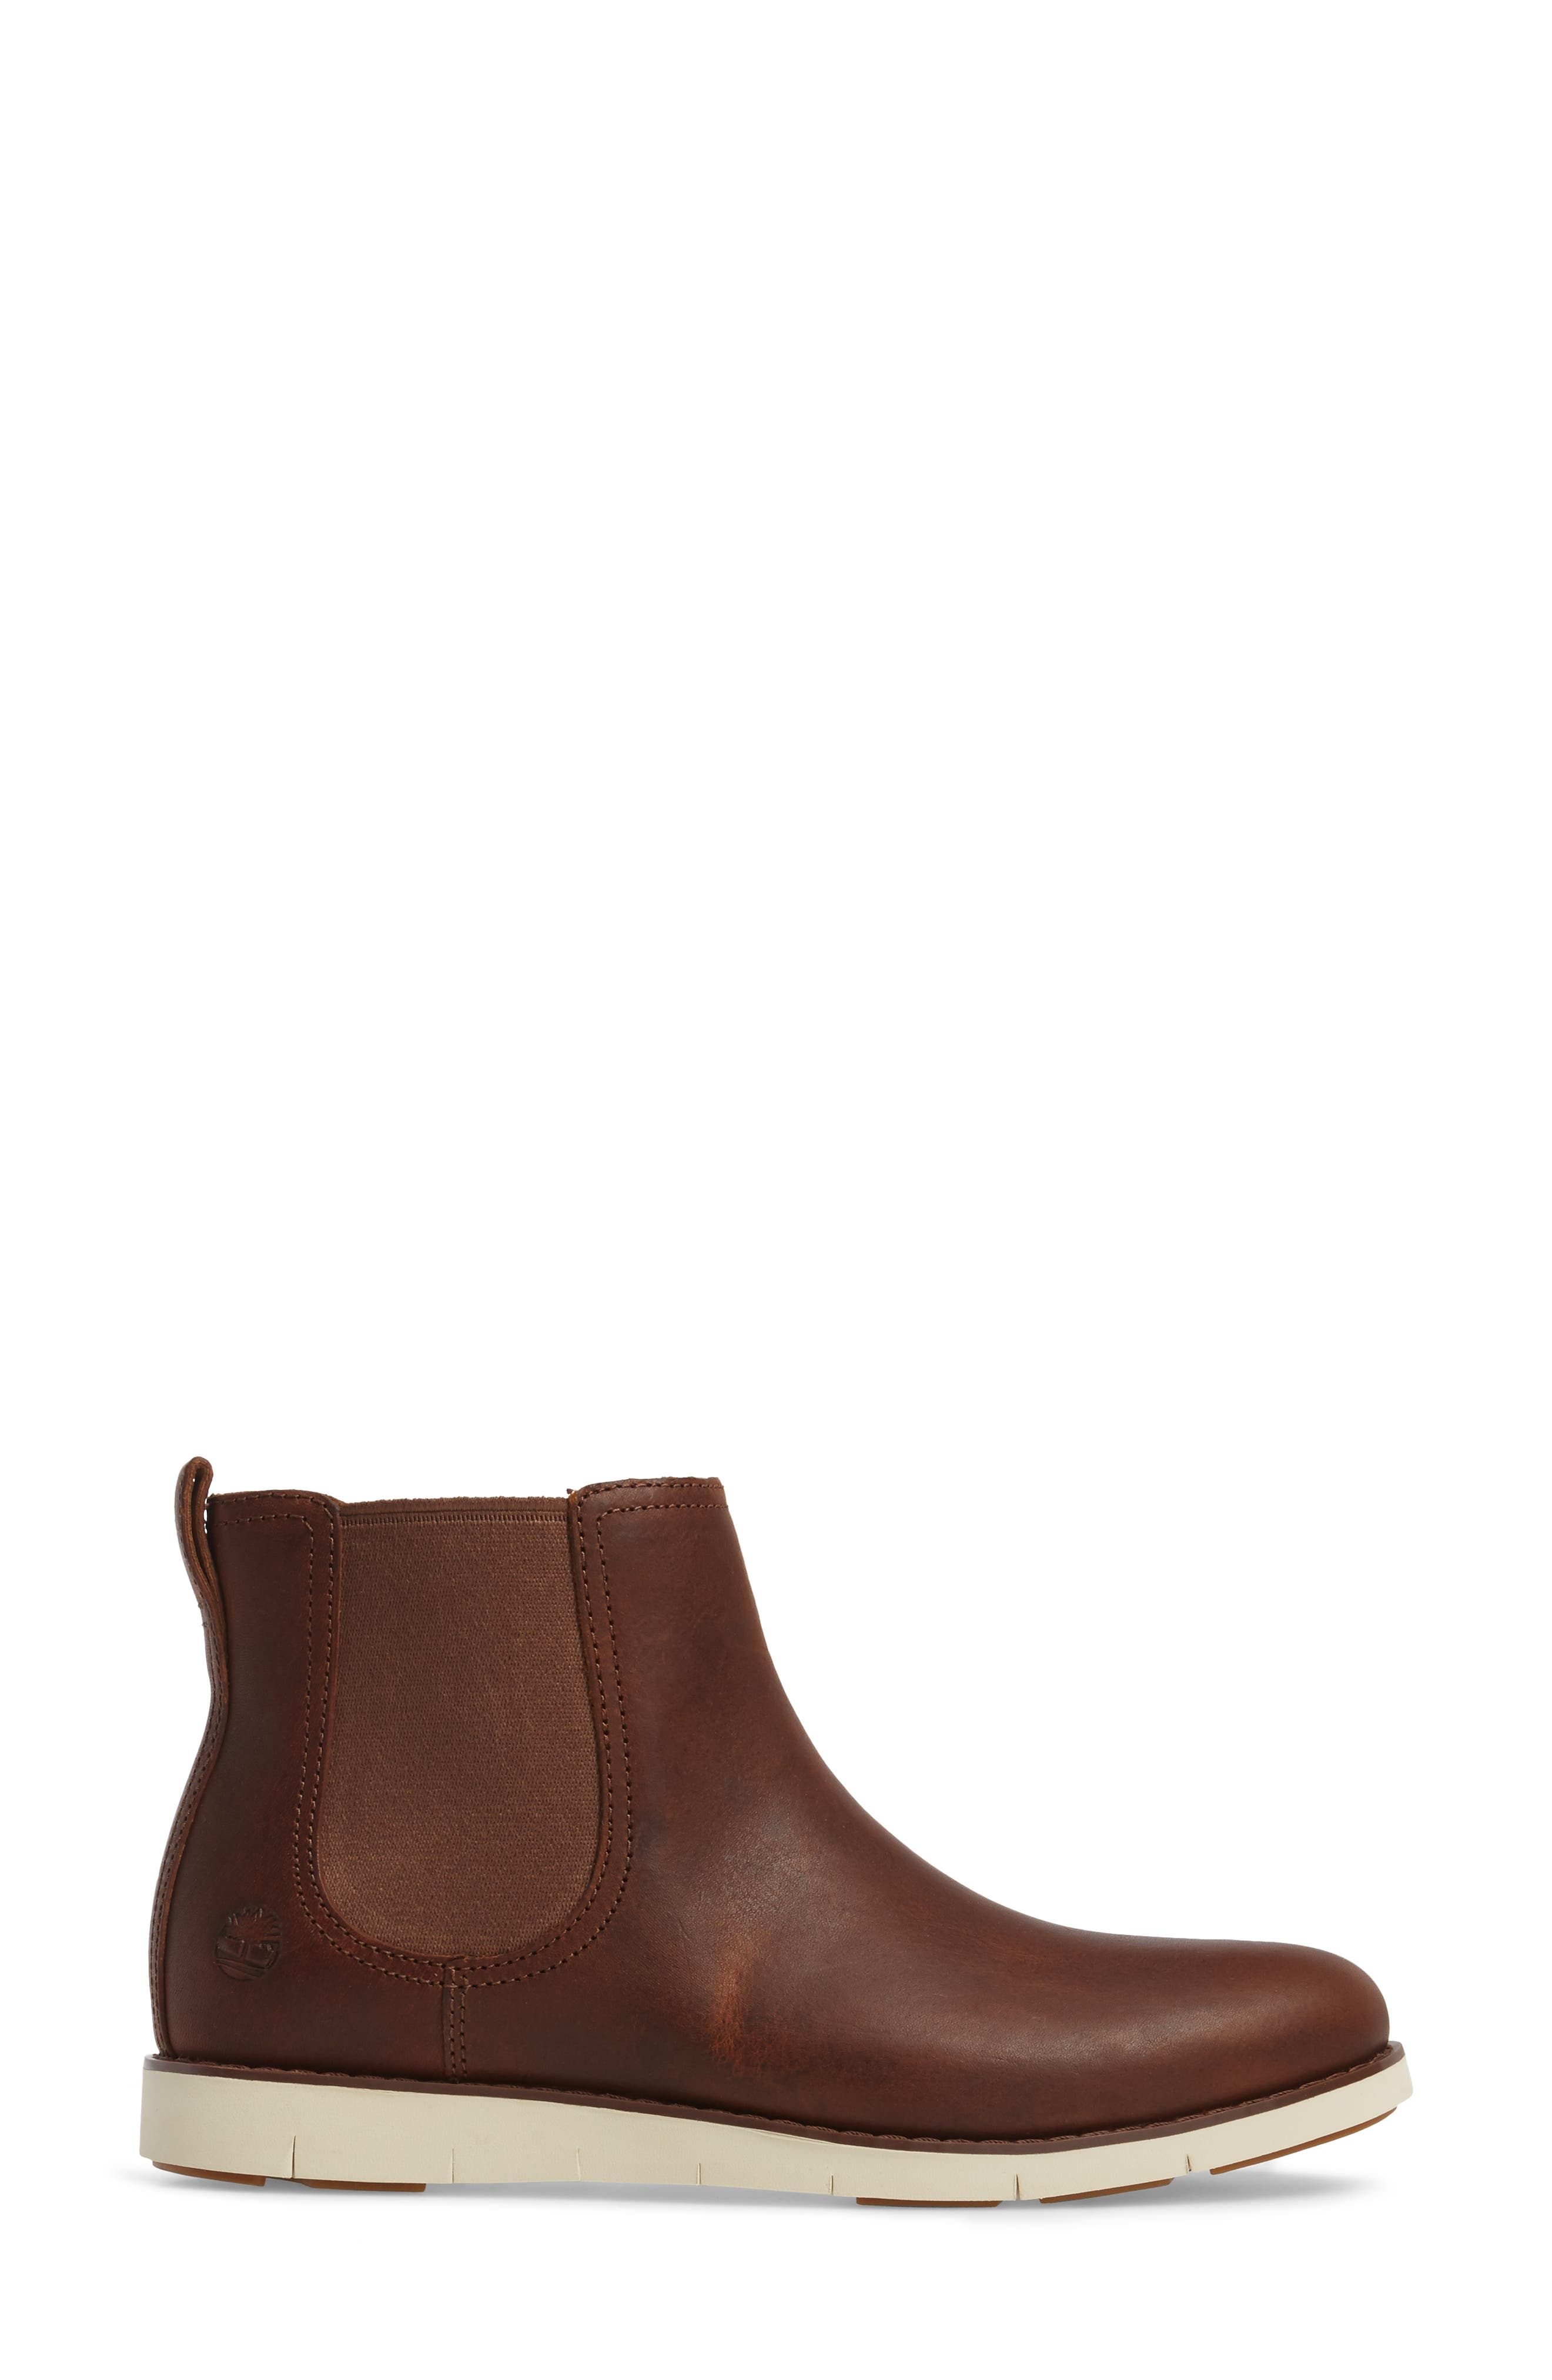 Lakeville Chelsea Boot,                             Alternate thumbnail 3, color,                             Medium Brown Leather